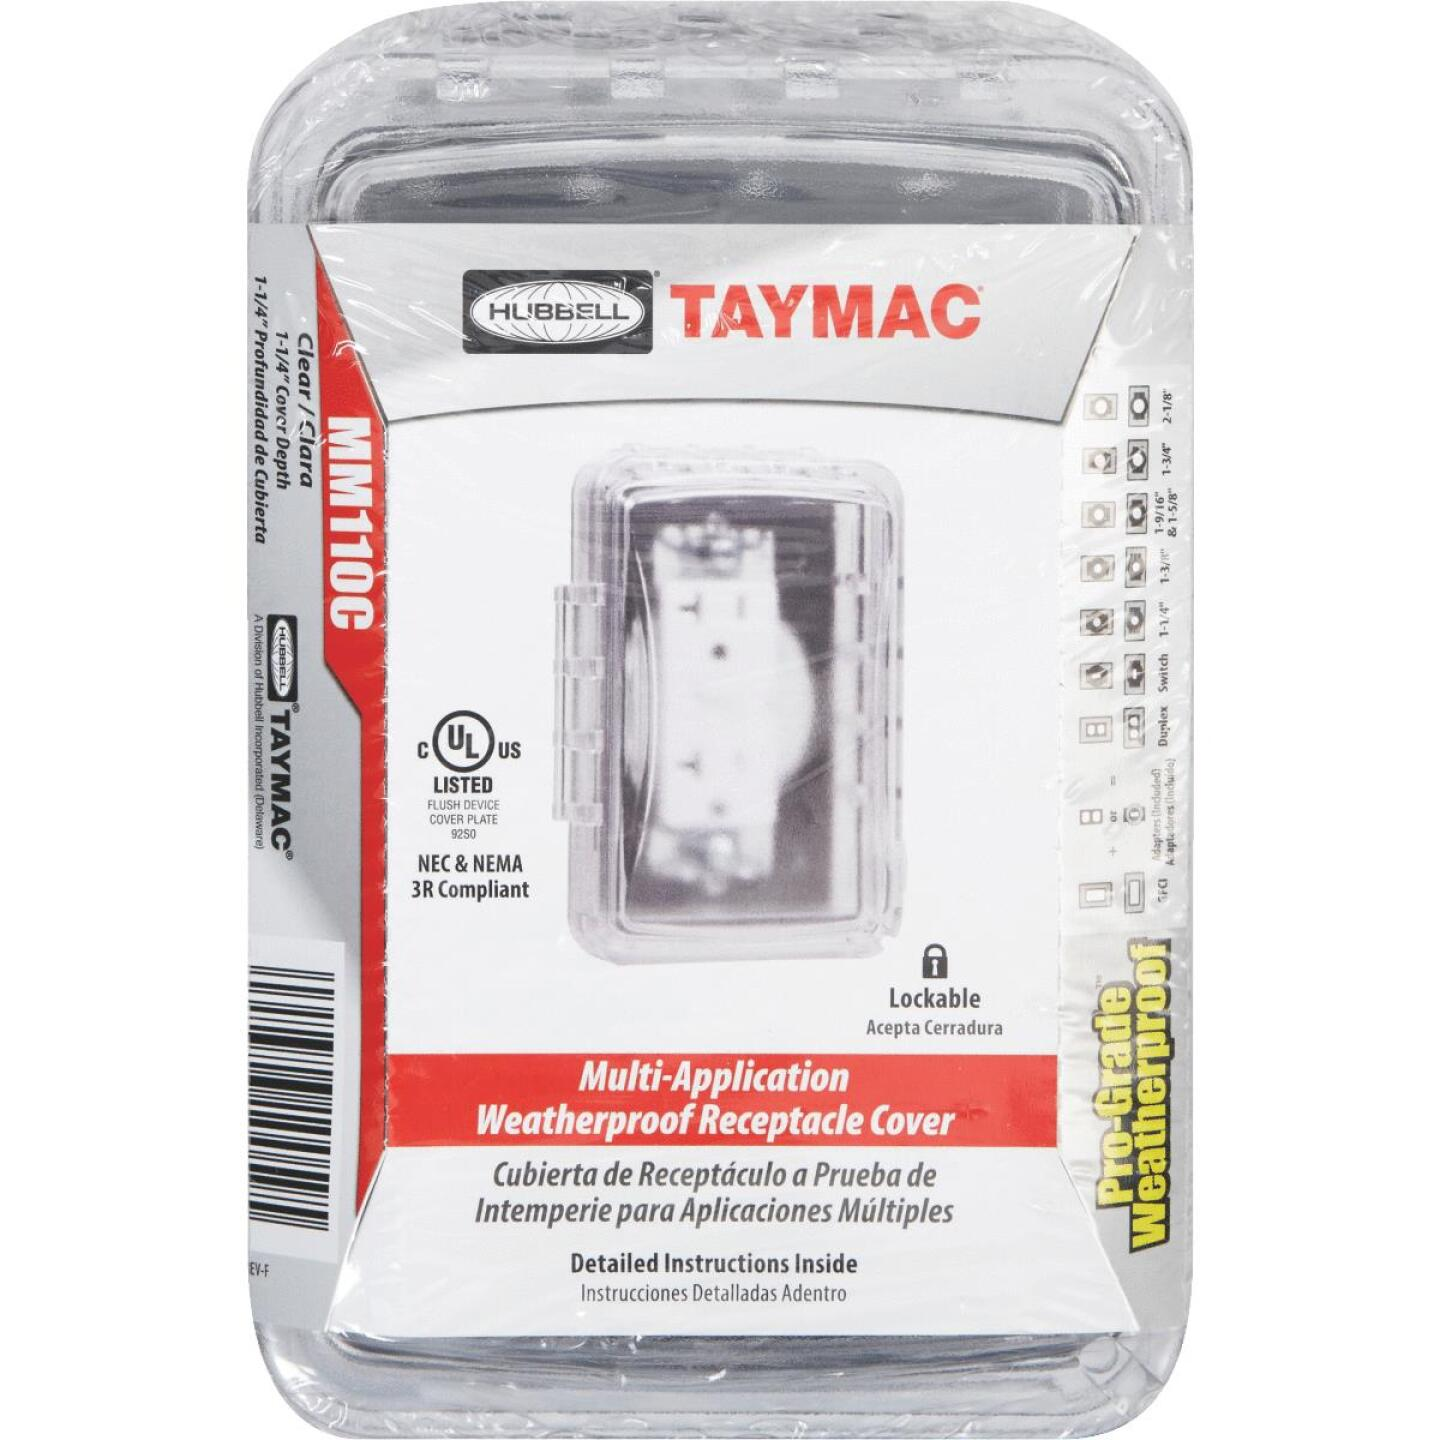 TayMac Single Gang Retangular Polycarbonate Clear Weatherproof Outdoor Box Flip Cover Image 2